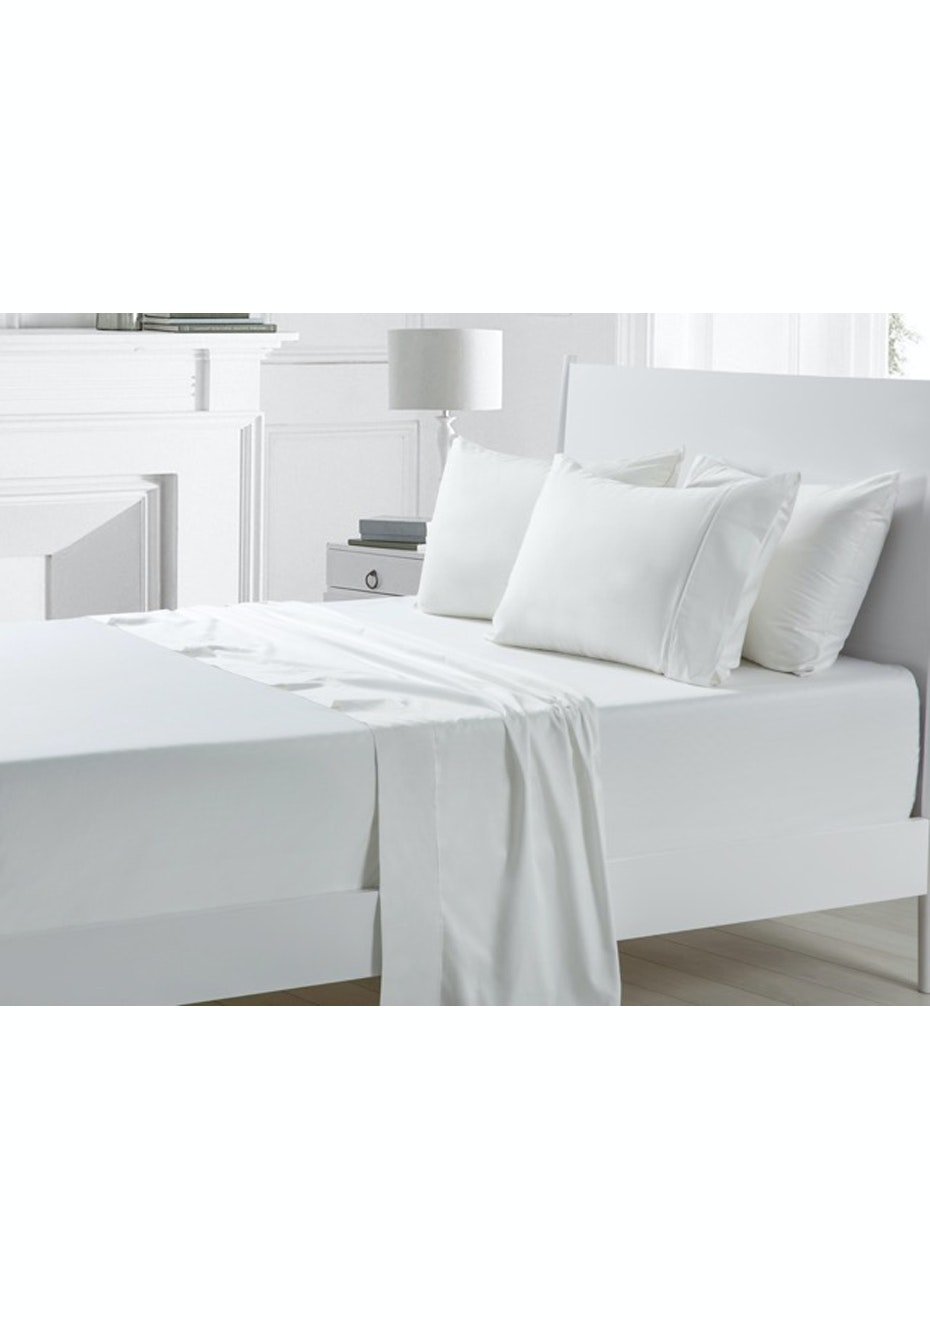 White 300TC Cotton Sateen Sheet Set - King Bed